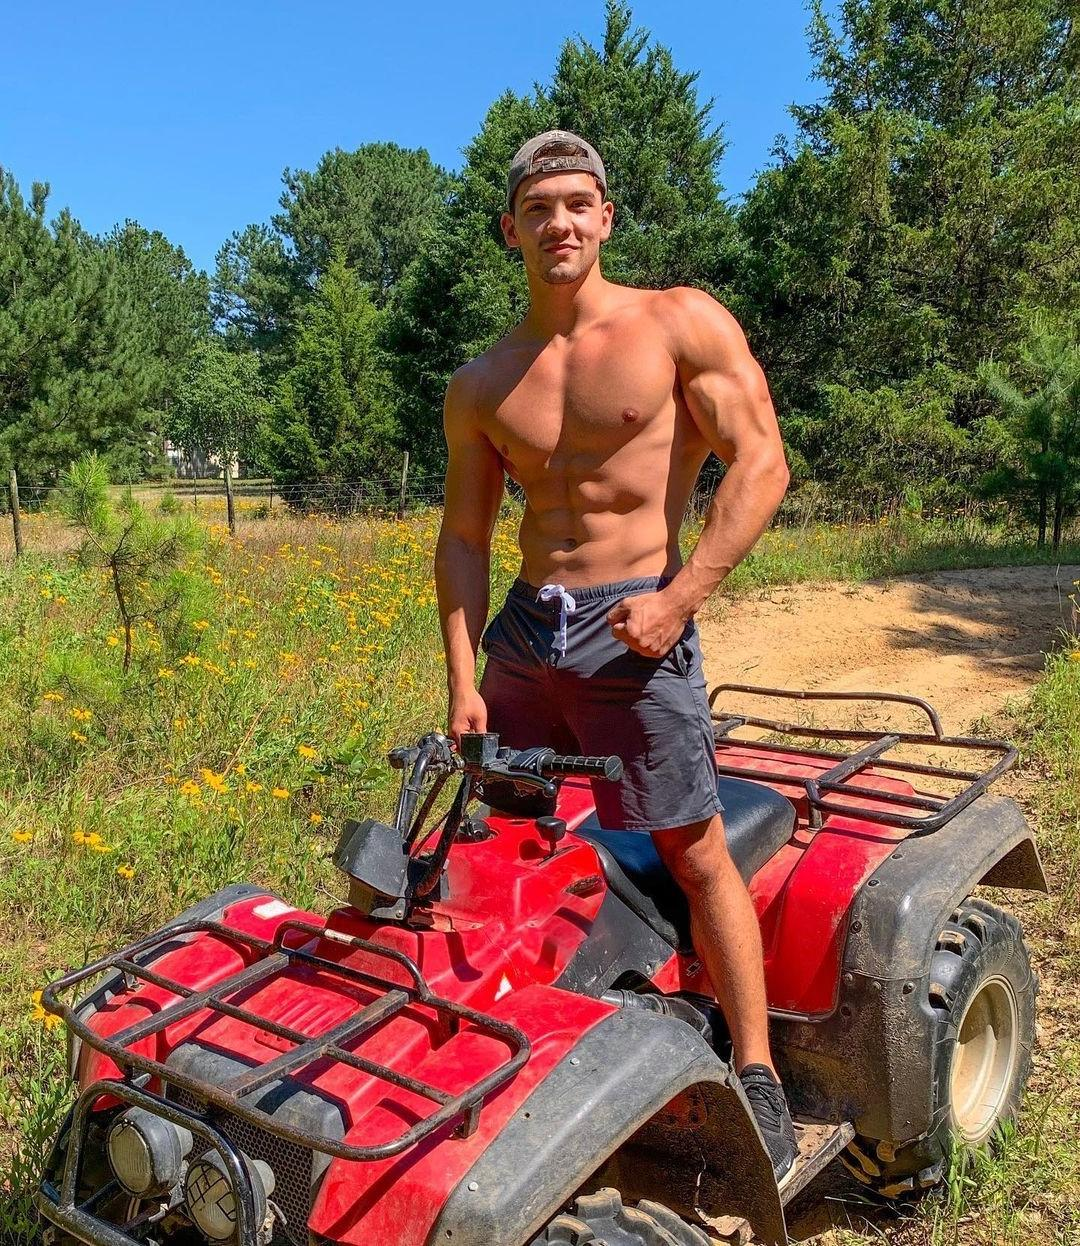 cute-fit-shirtless-baseball-cap-dude-riding-motorcycle-outdoors-adventure